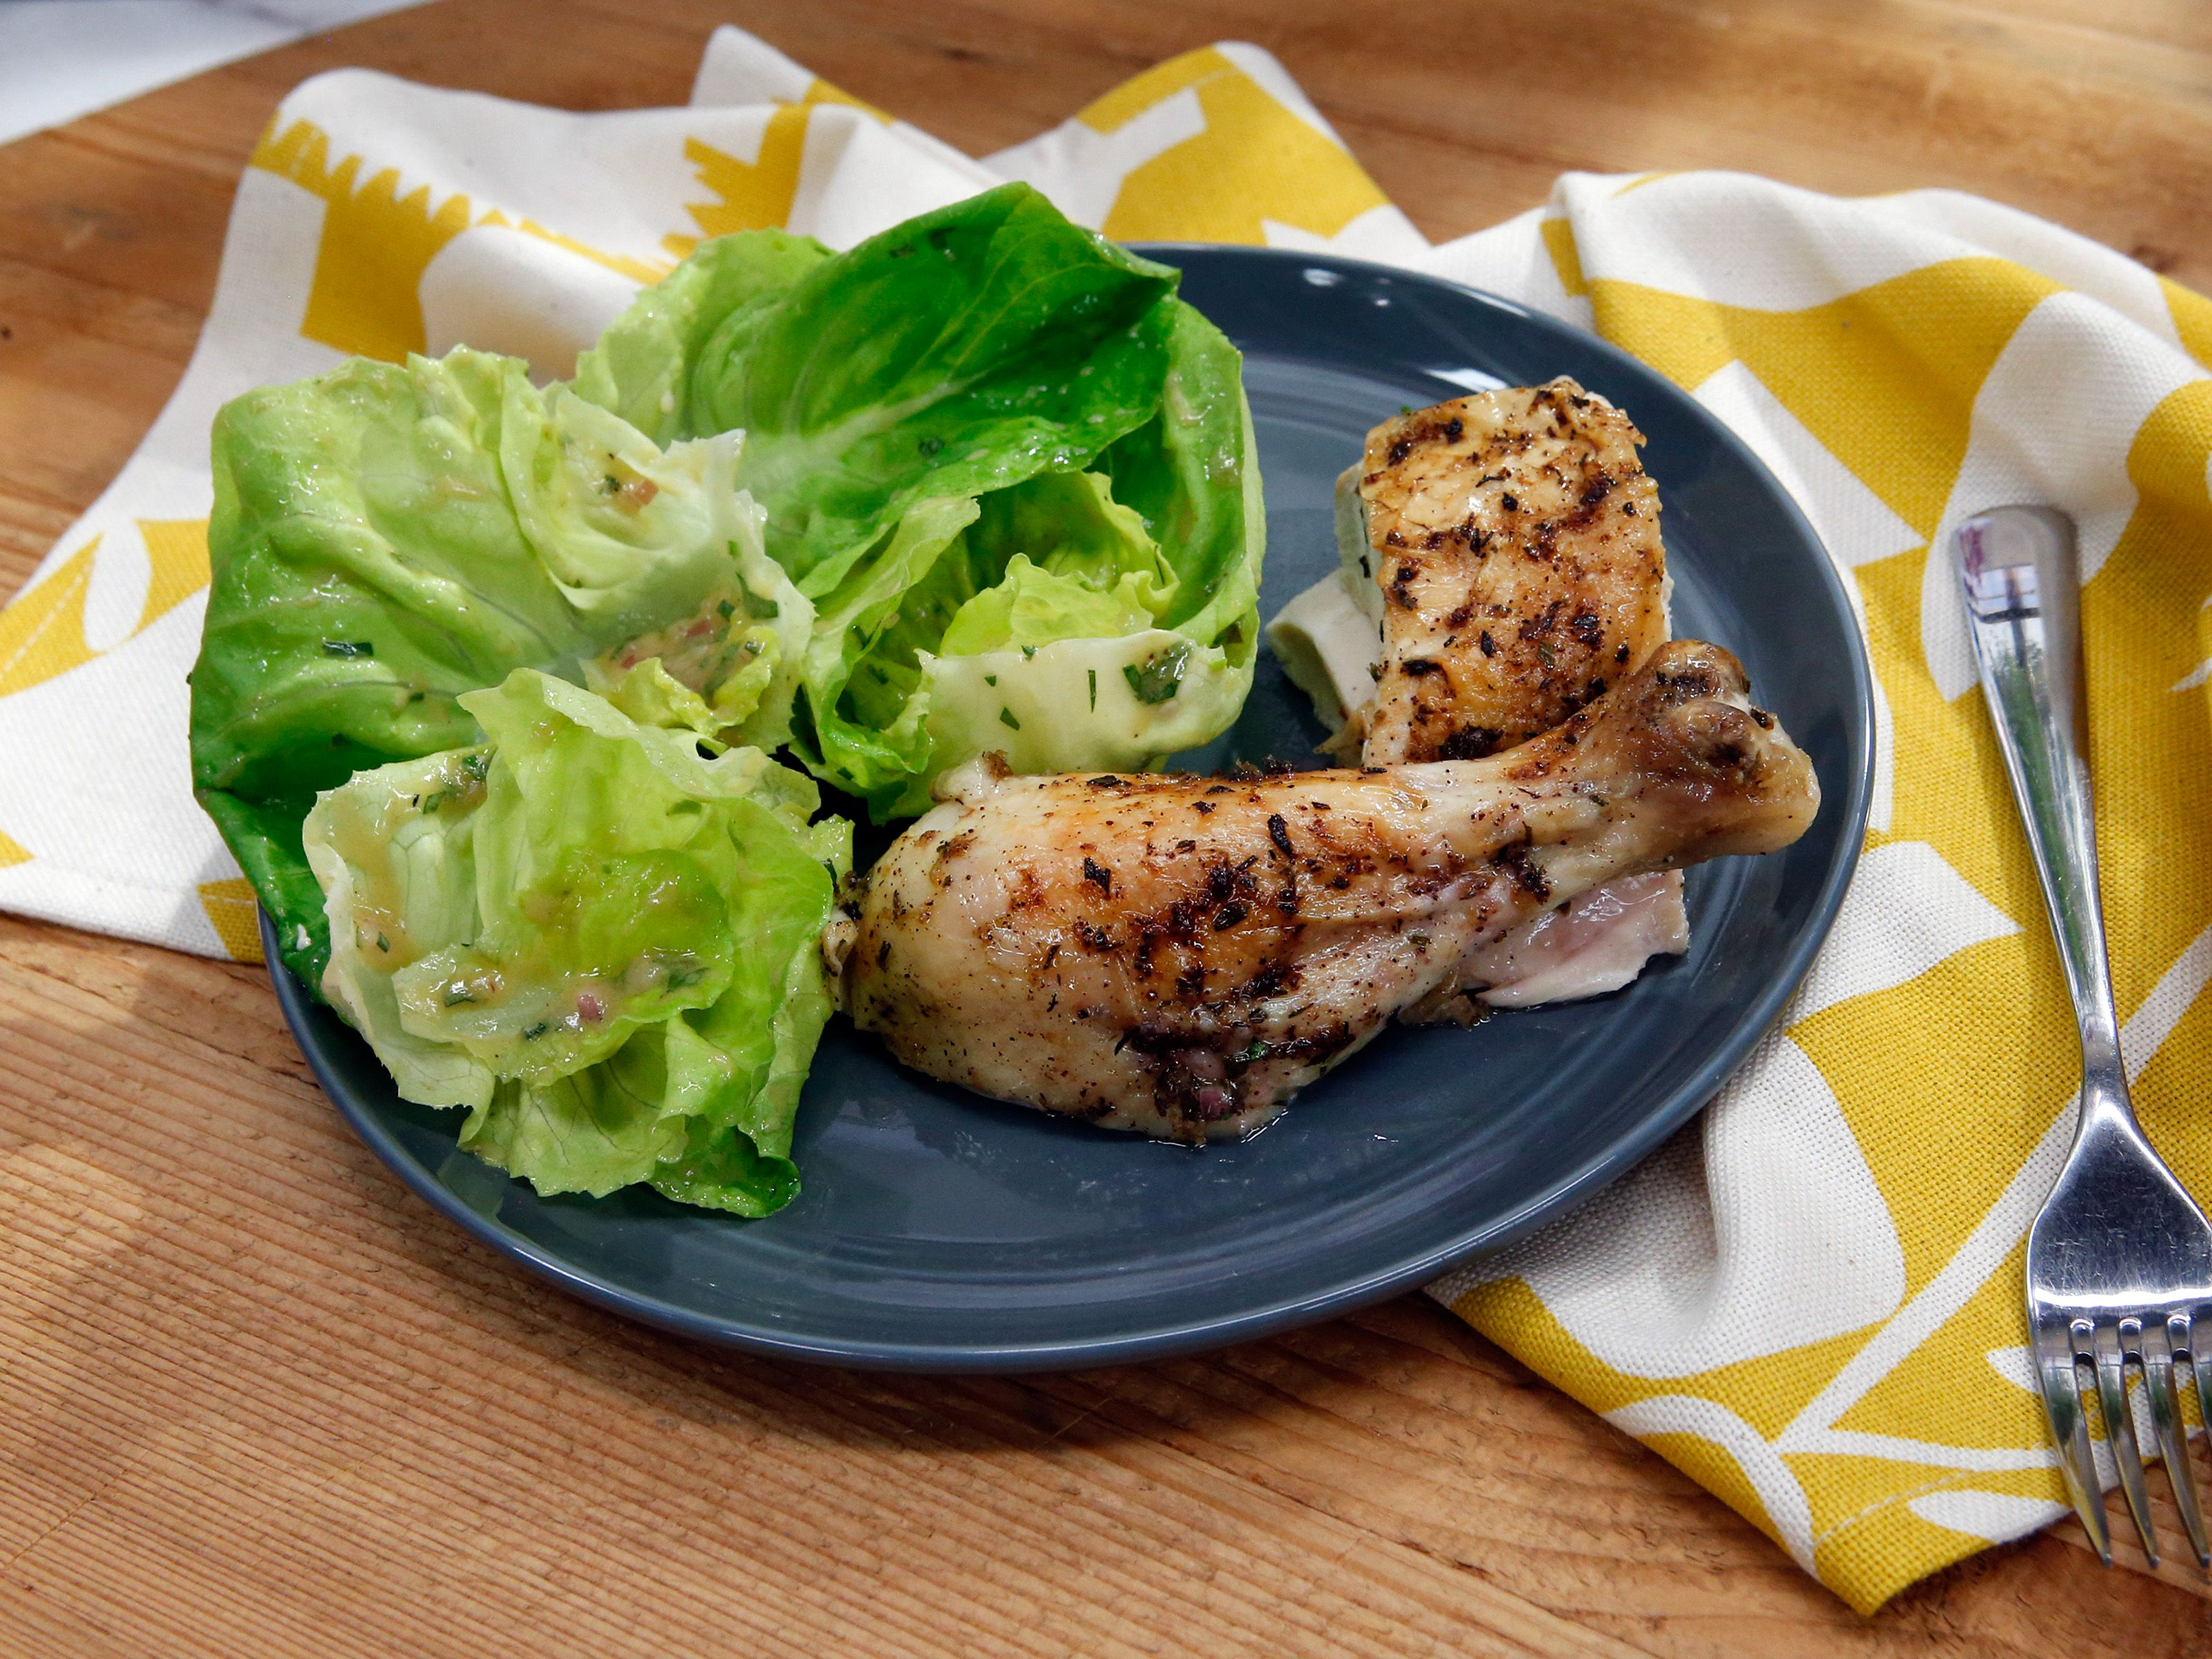 Roasted chicken with bibb lettuce and roasted chicken vinaigrette roasted chicken with bibb lettuce and roasted chicken vinaigrette recipe geoffrey zakarian vinaigrette and lettuce forumfinder Images